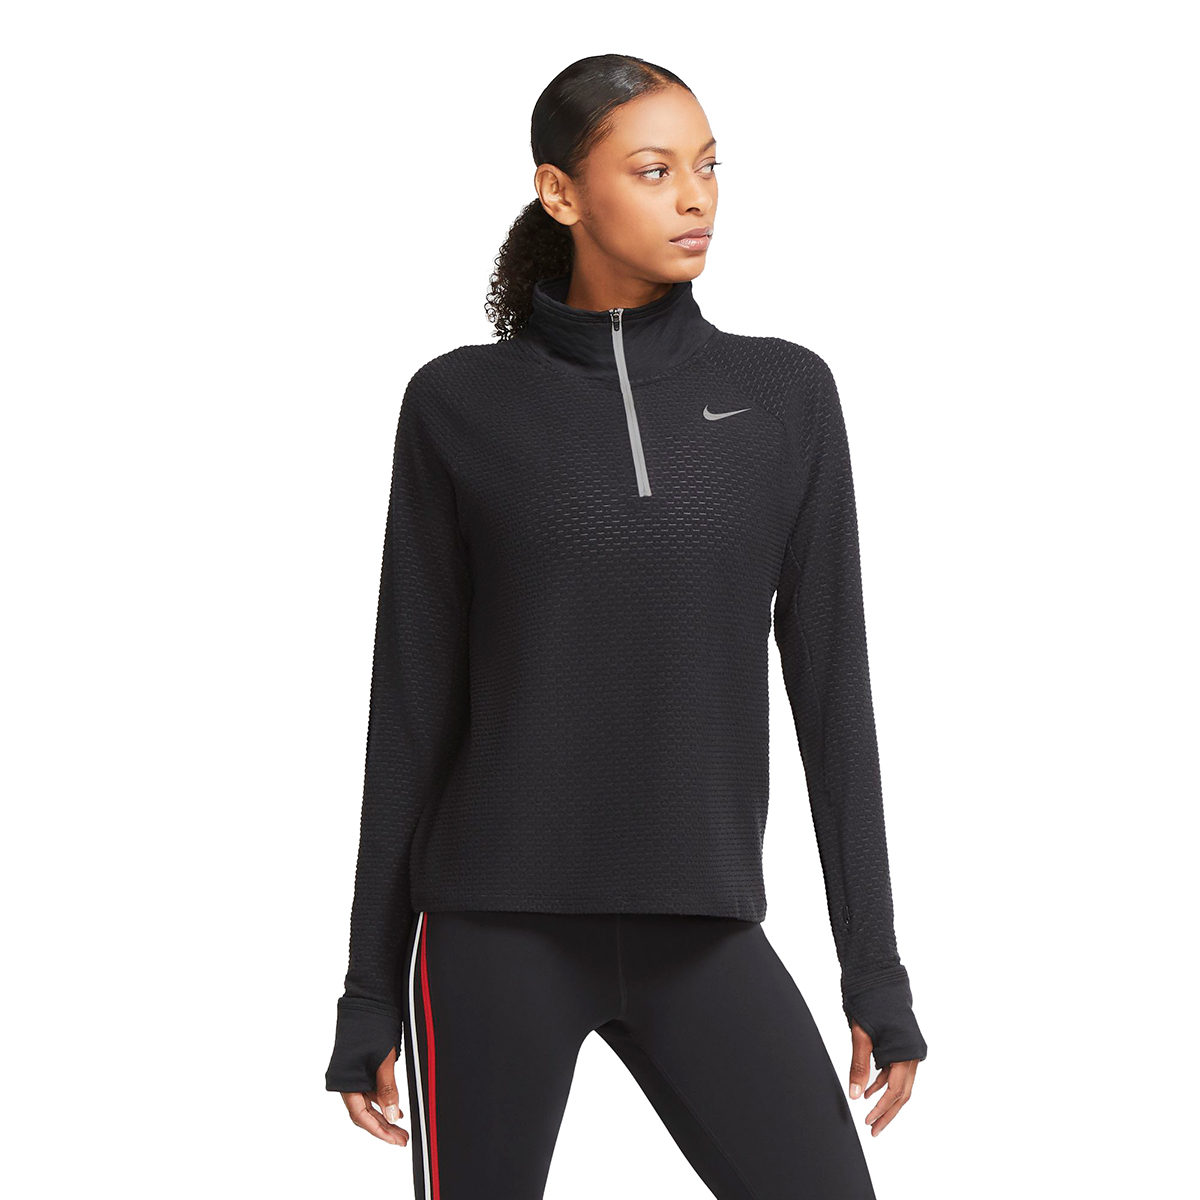 Women's Nike Sphere Half Zip Long Sleeve Shirt - Color: Black - Size: XS, Black, large, image 1